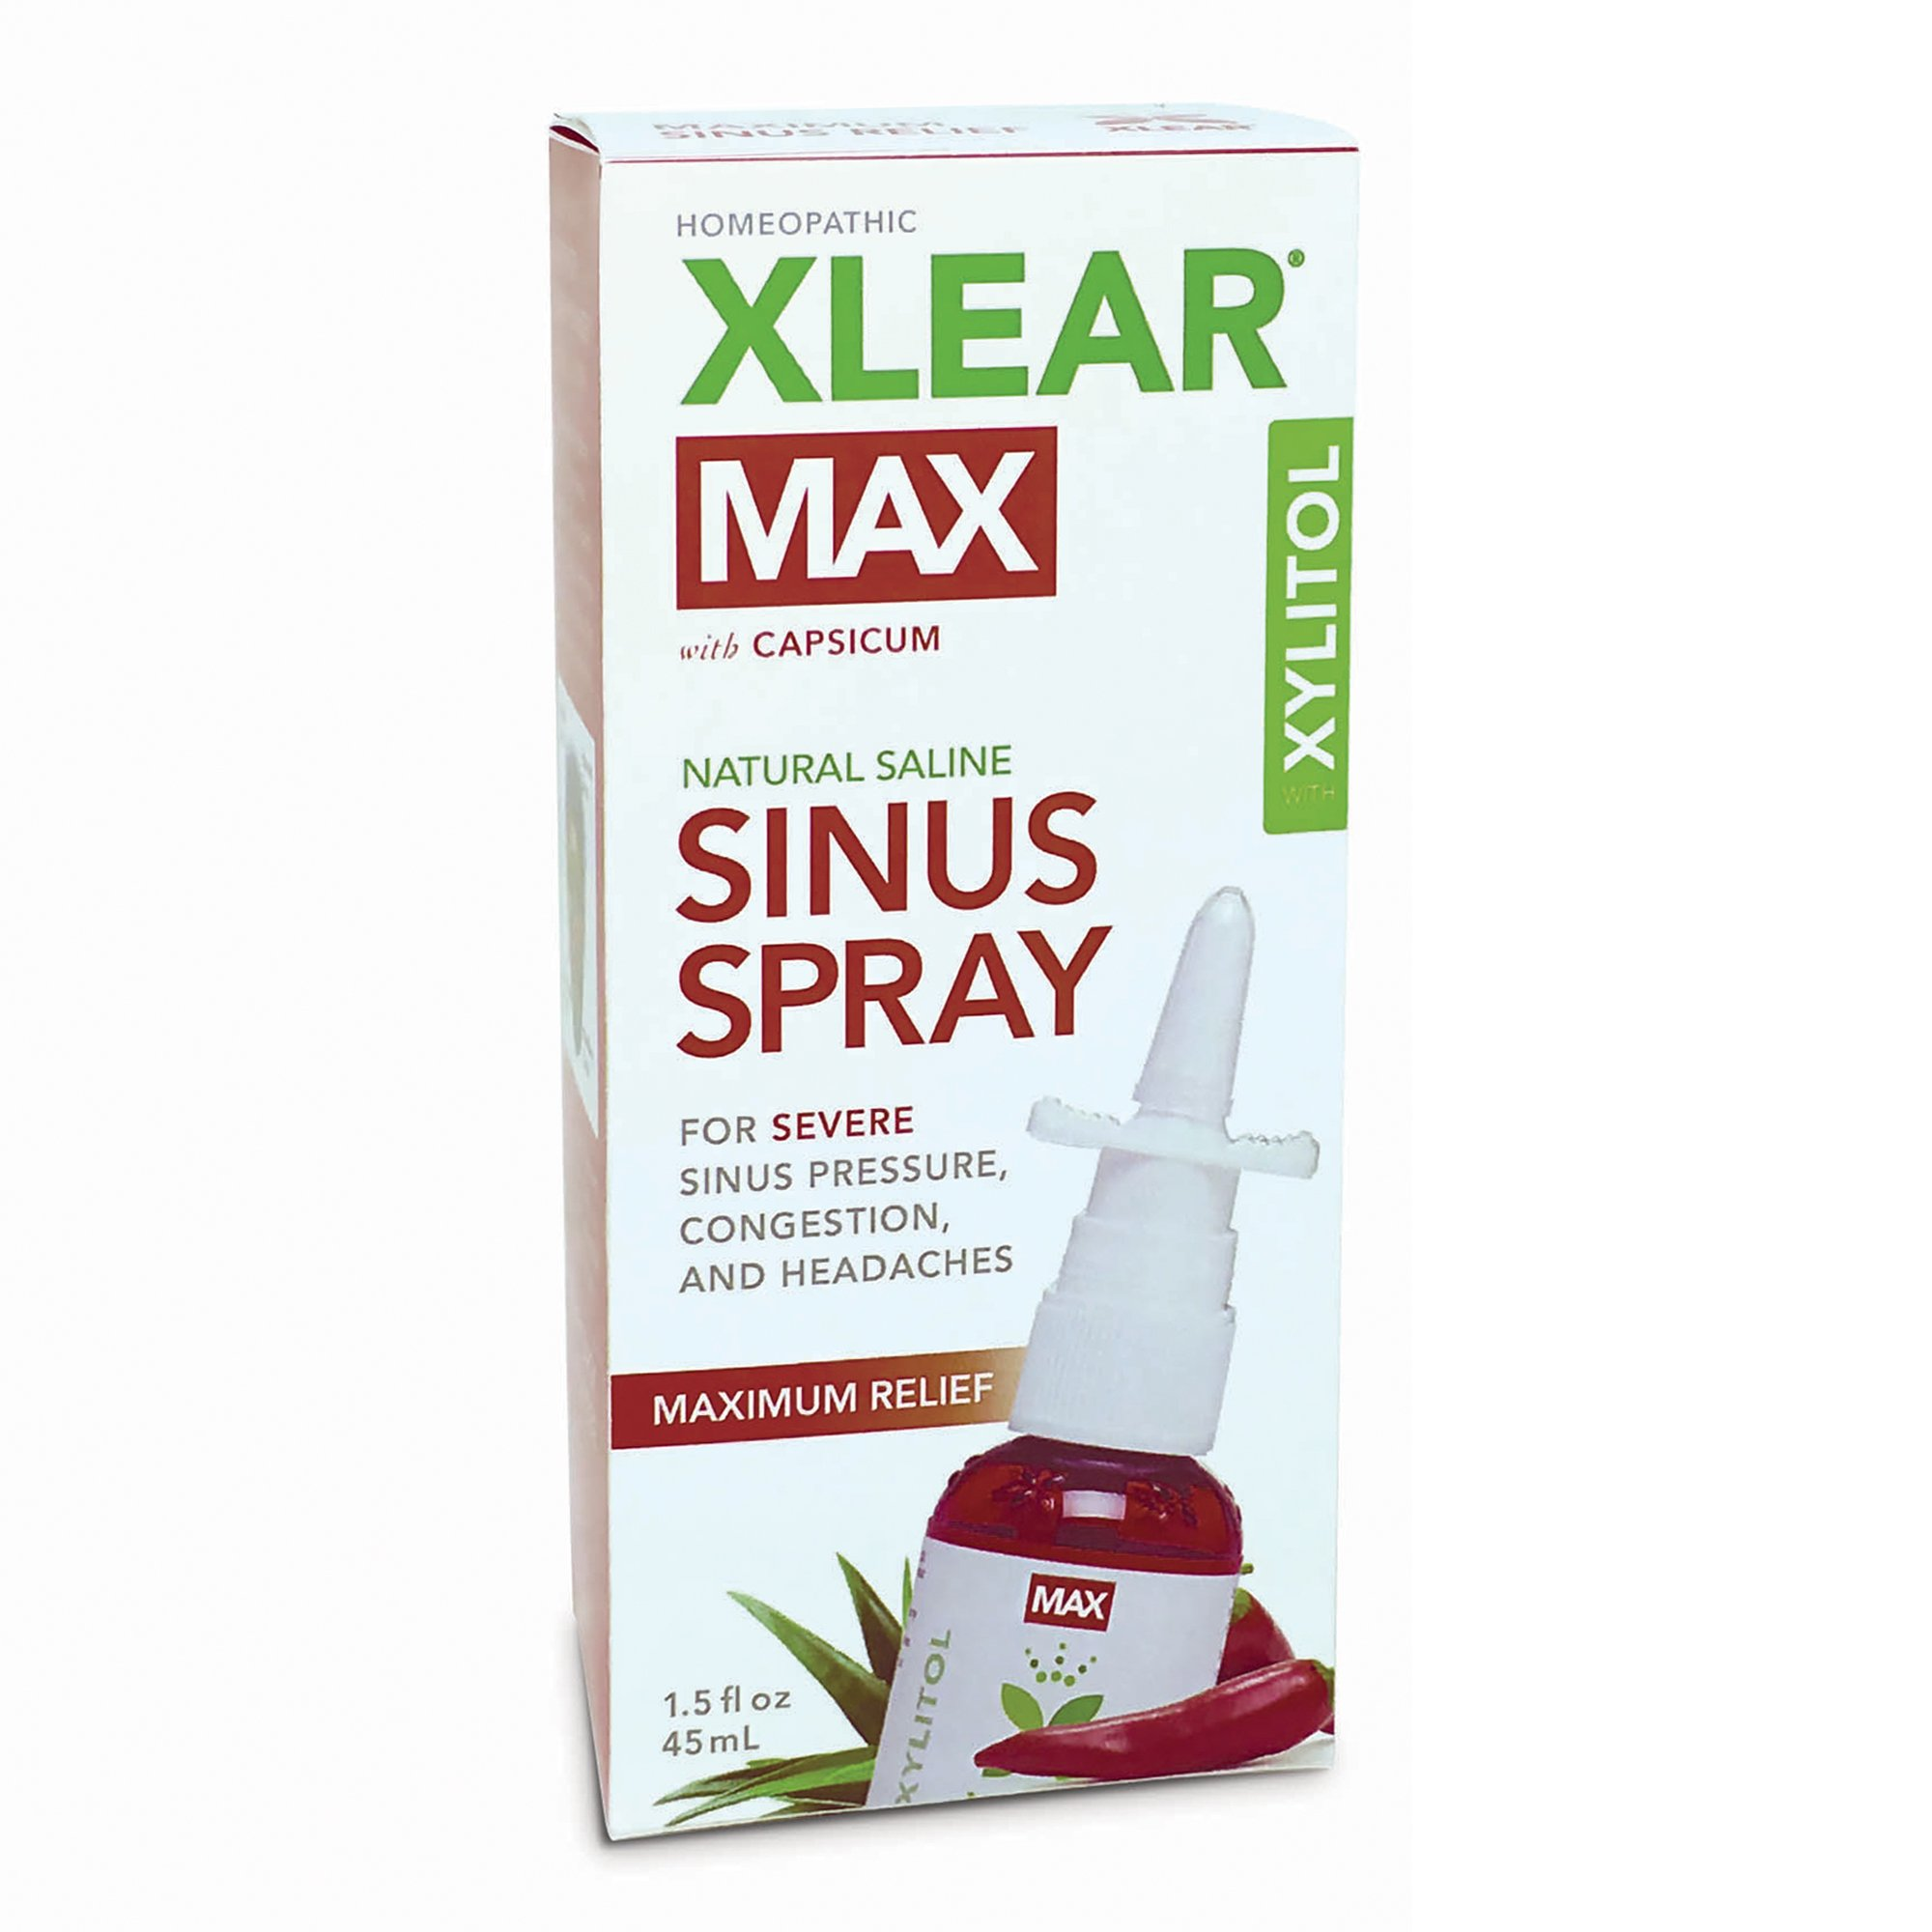 XLEAR MAX Nasal Spray, 1.5oz, New! Natural Formula With Xylitol, Capsicum, and Aloe for Maximum Relief From Severe Sinus Pressure, Congestion, Headaches, and Dryness